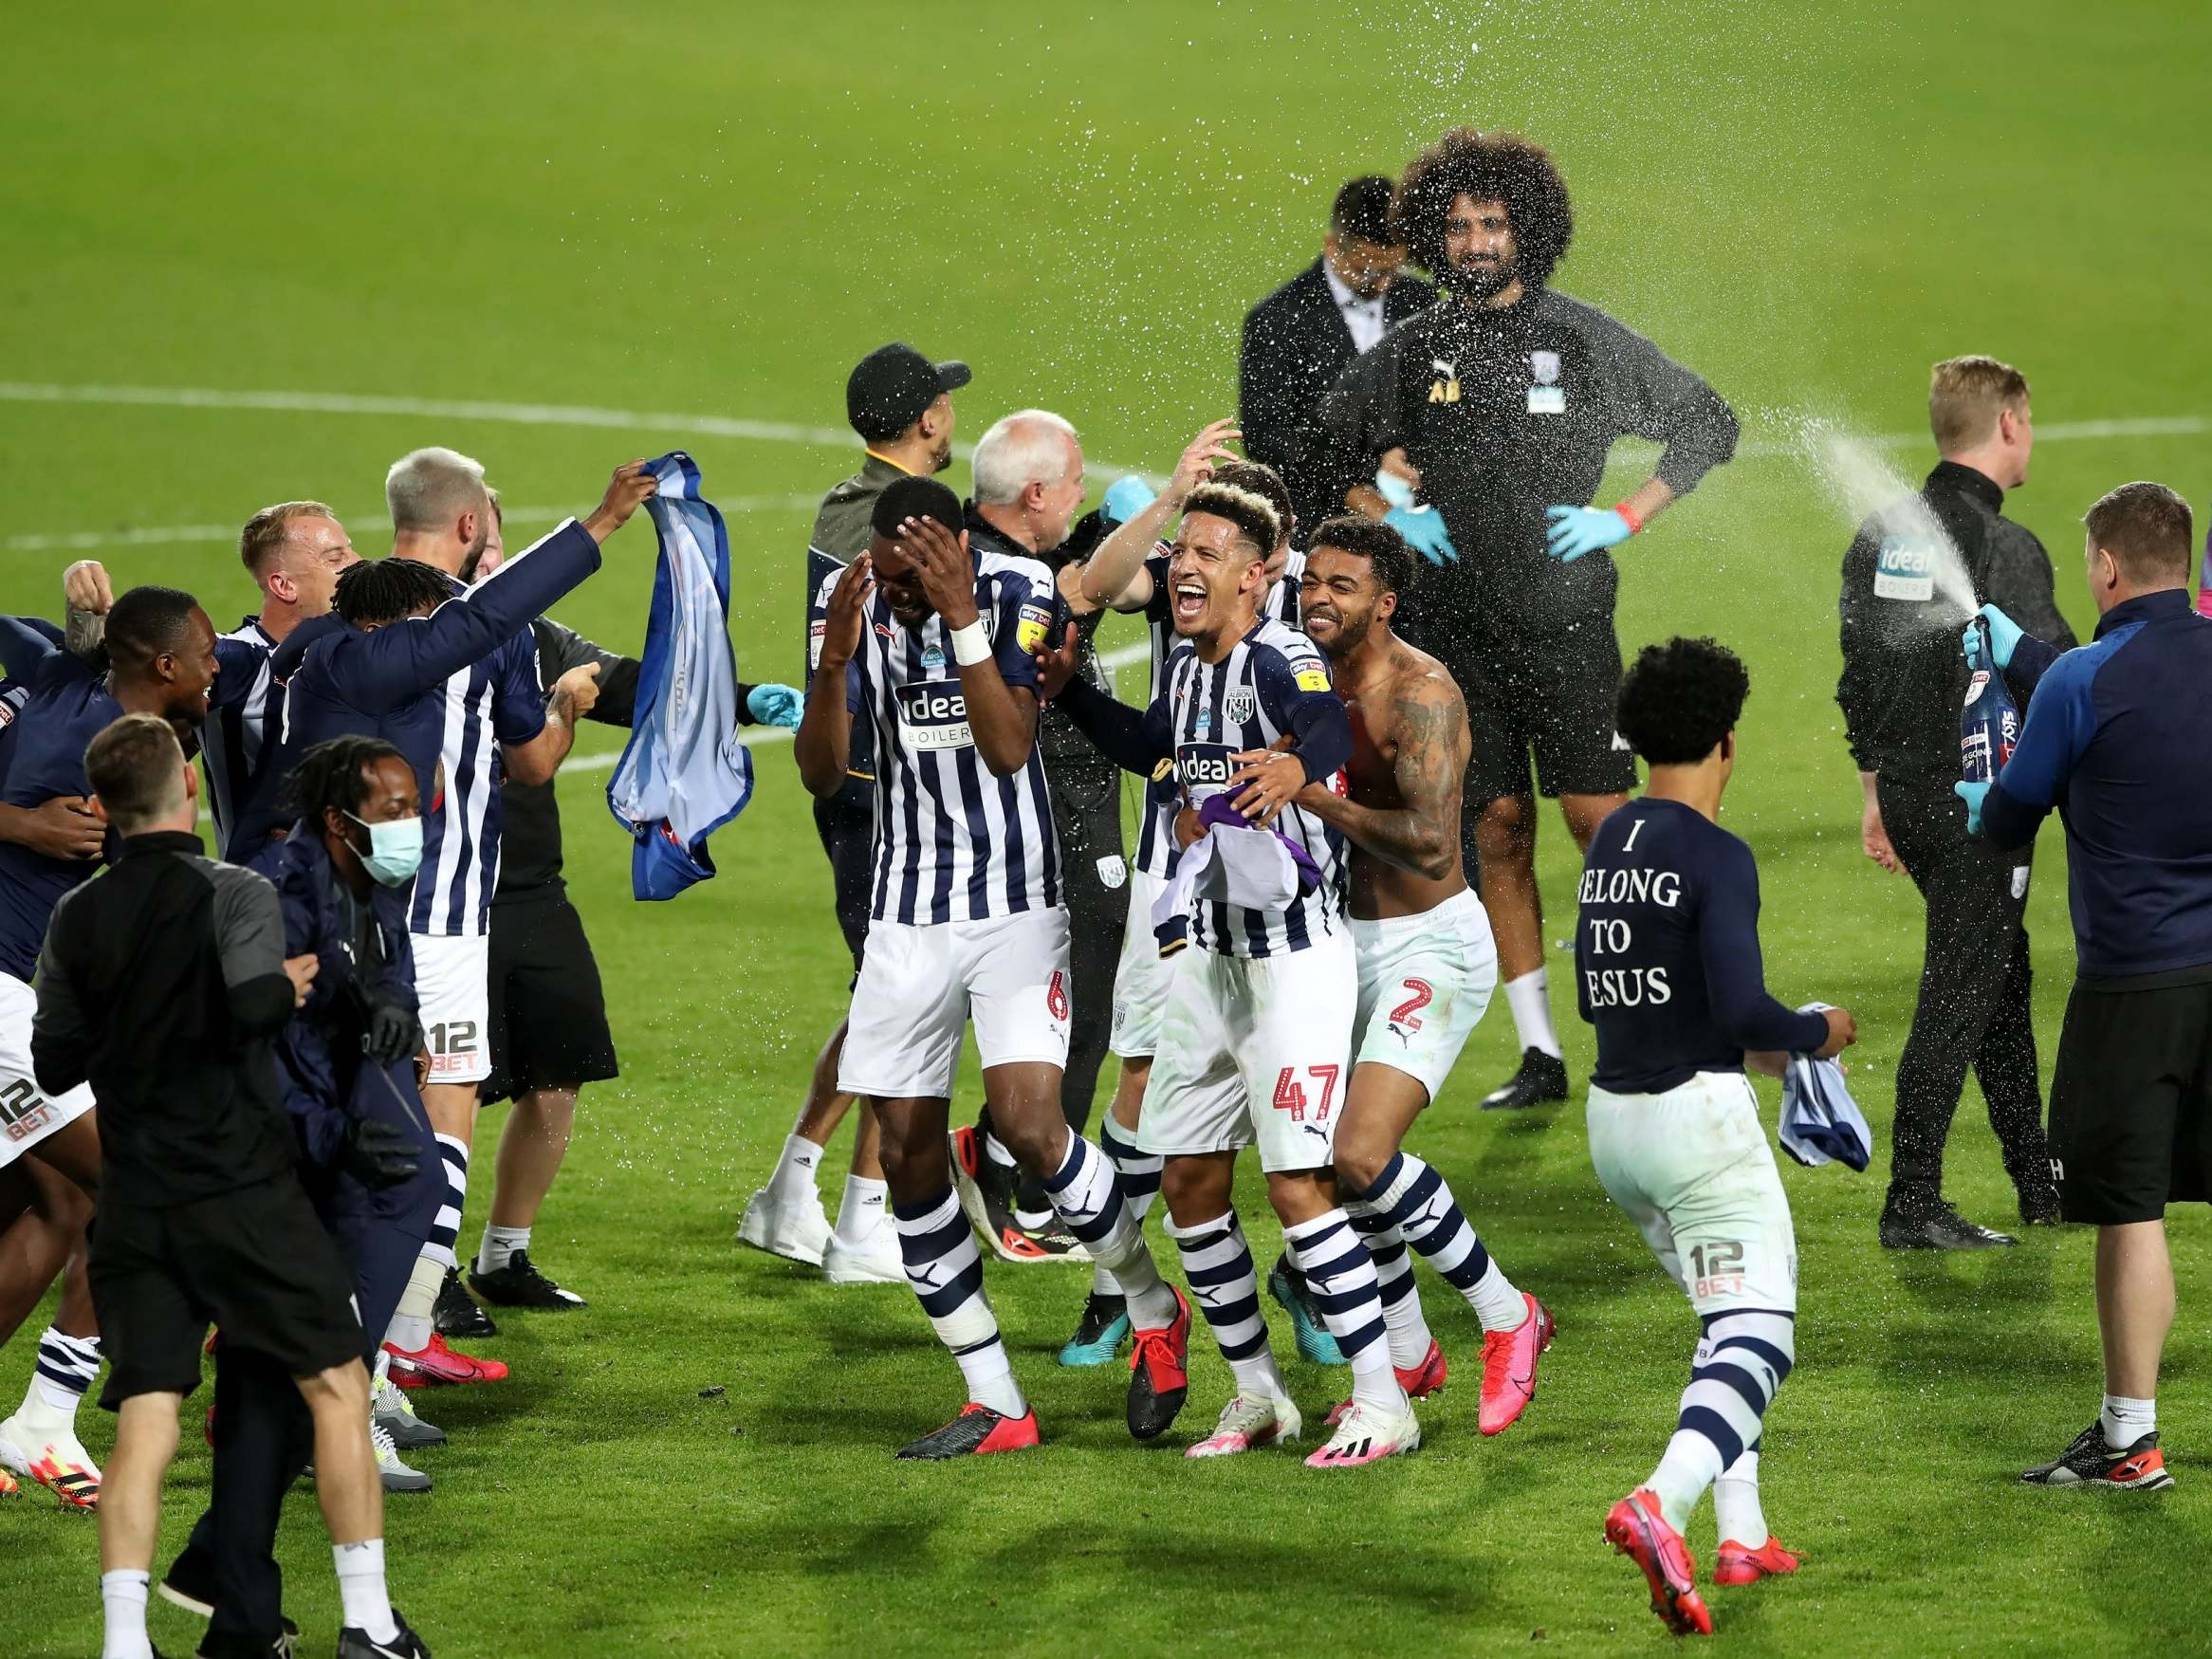 West Brom Promoted To Premier League After Dramatic Final Day In The Championship The Independent The Independent